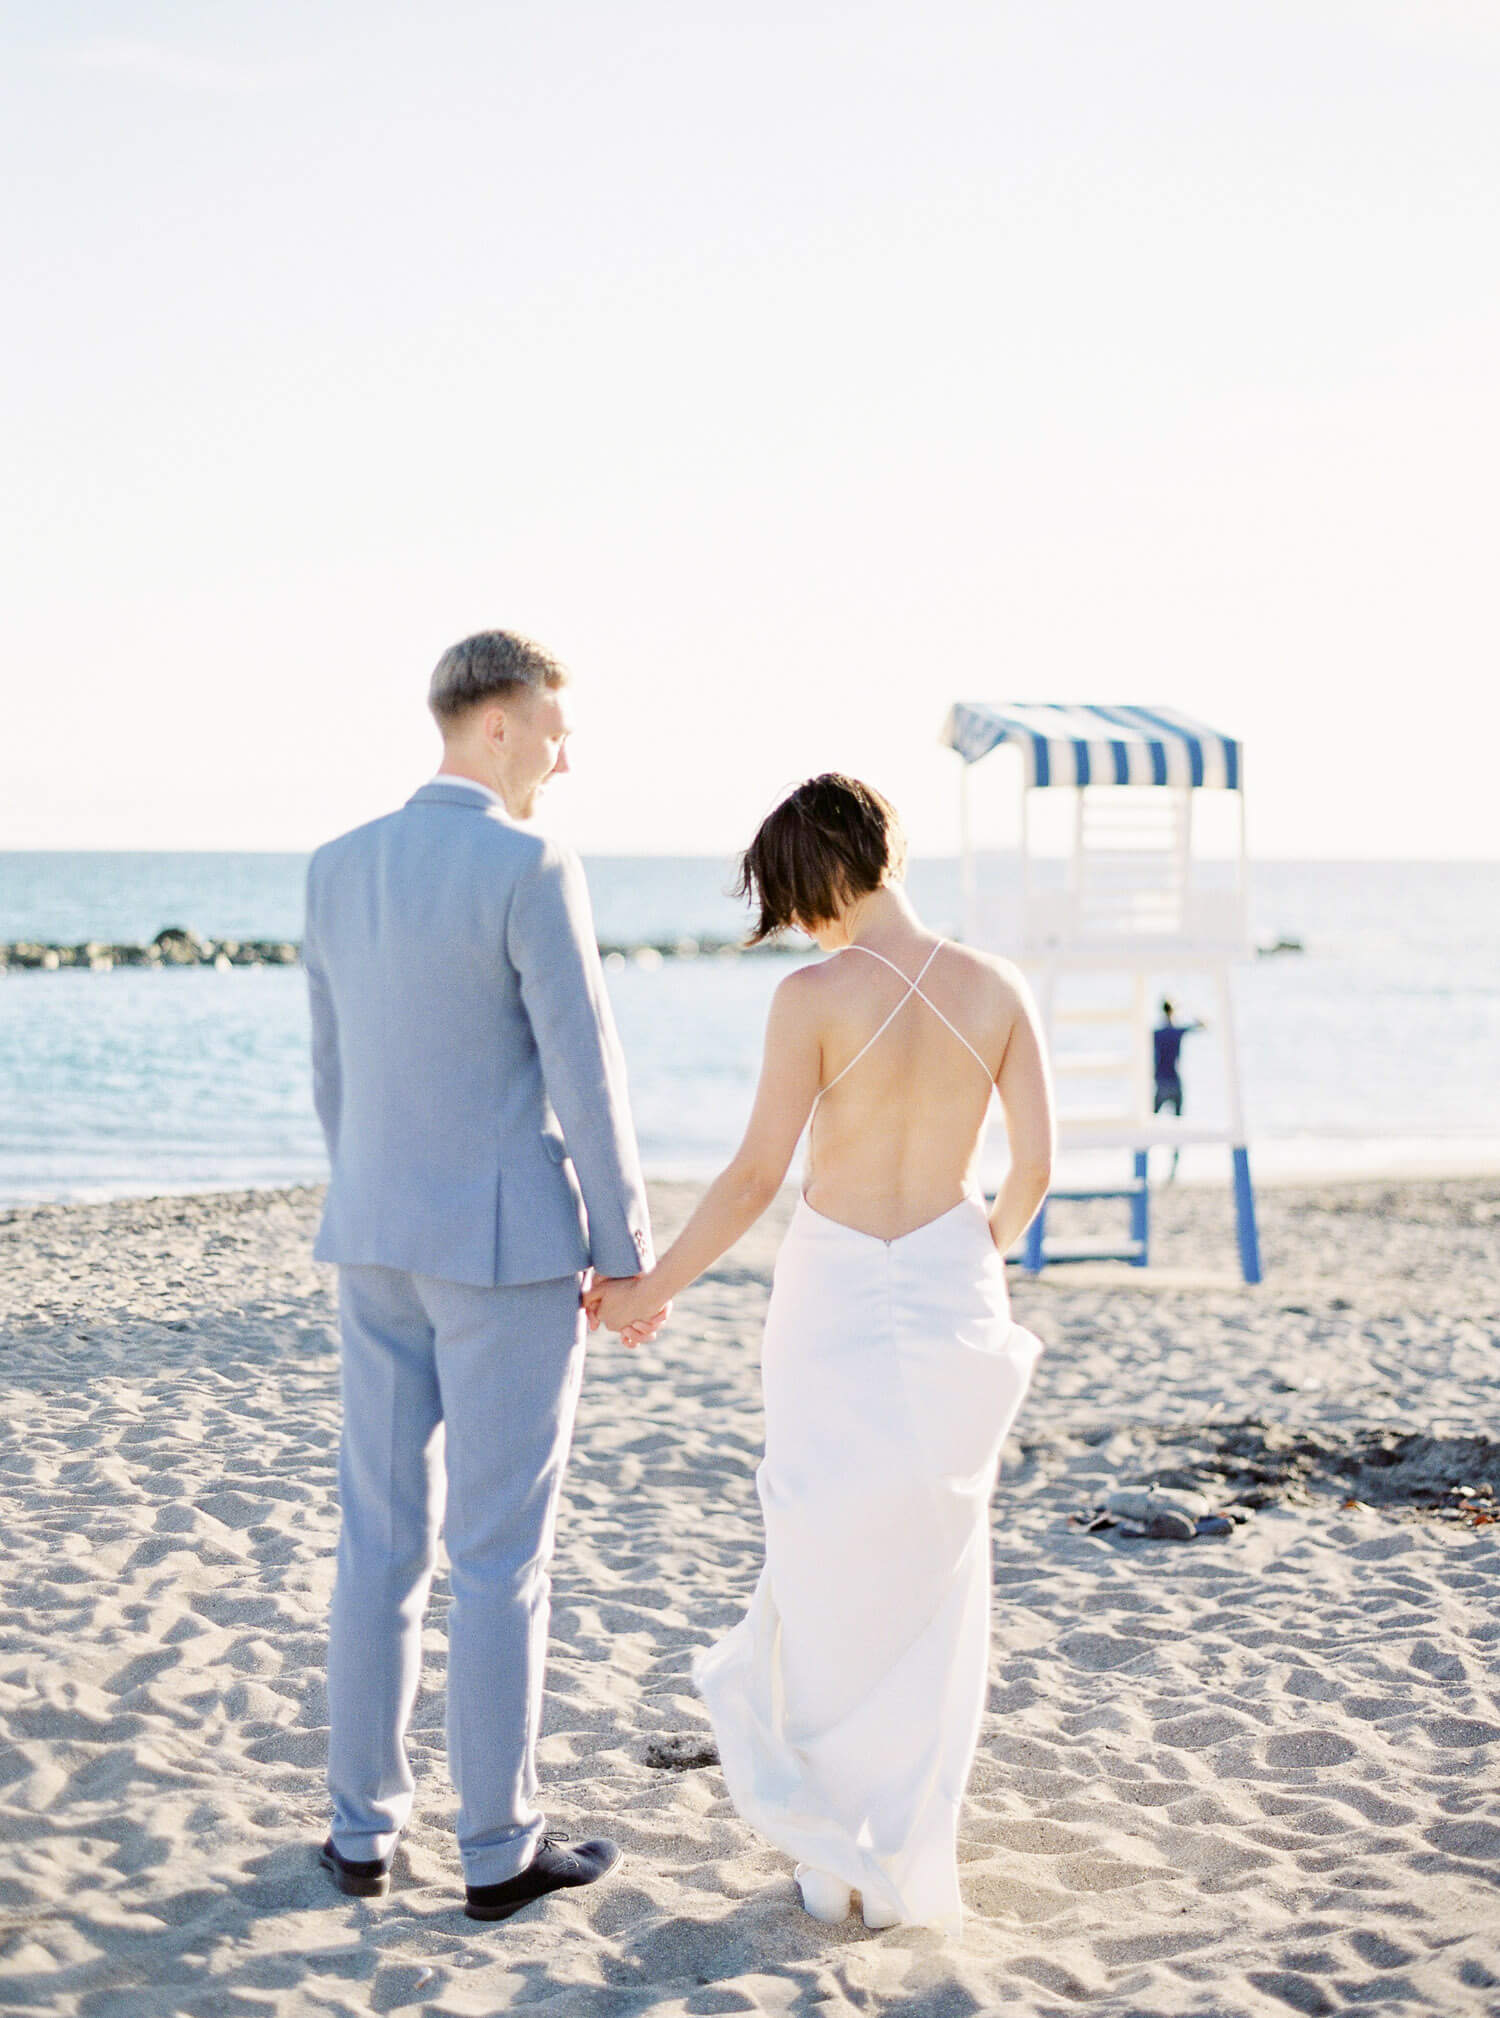 love story at the beach in Tenerife photographer Lilly Verhaegen